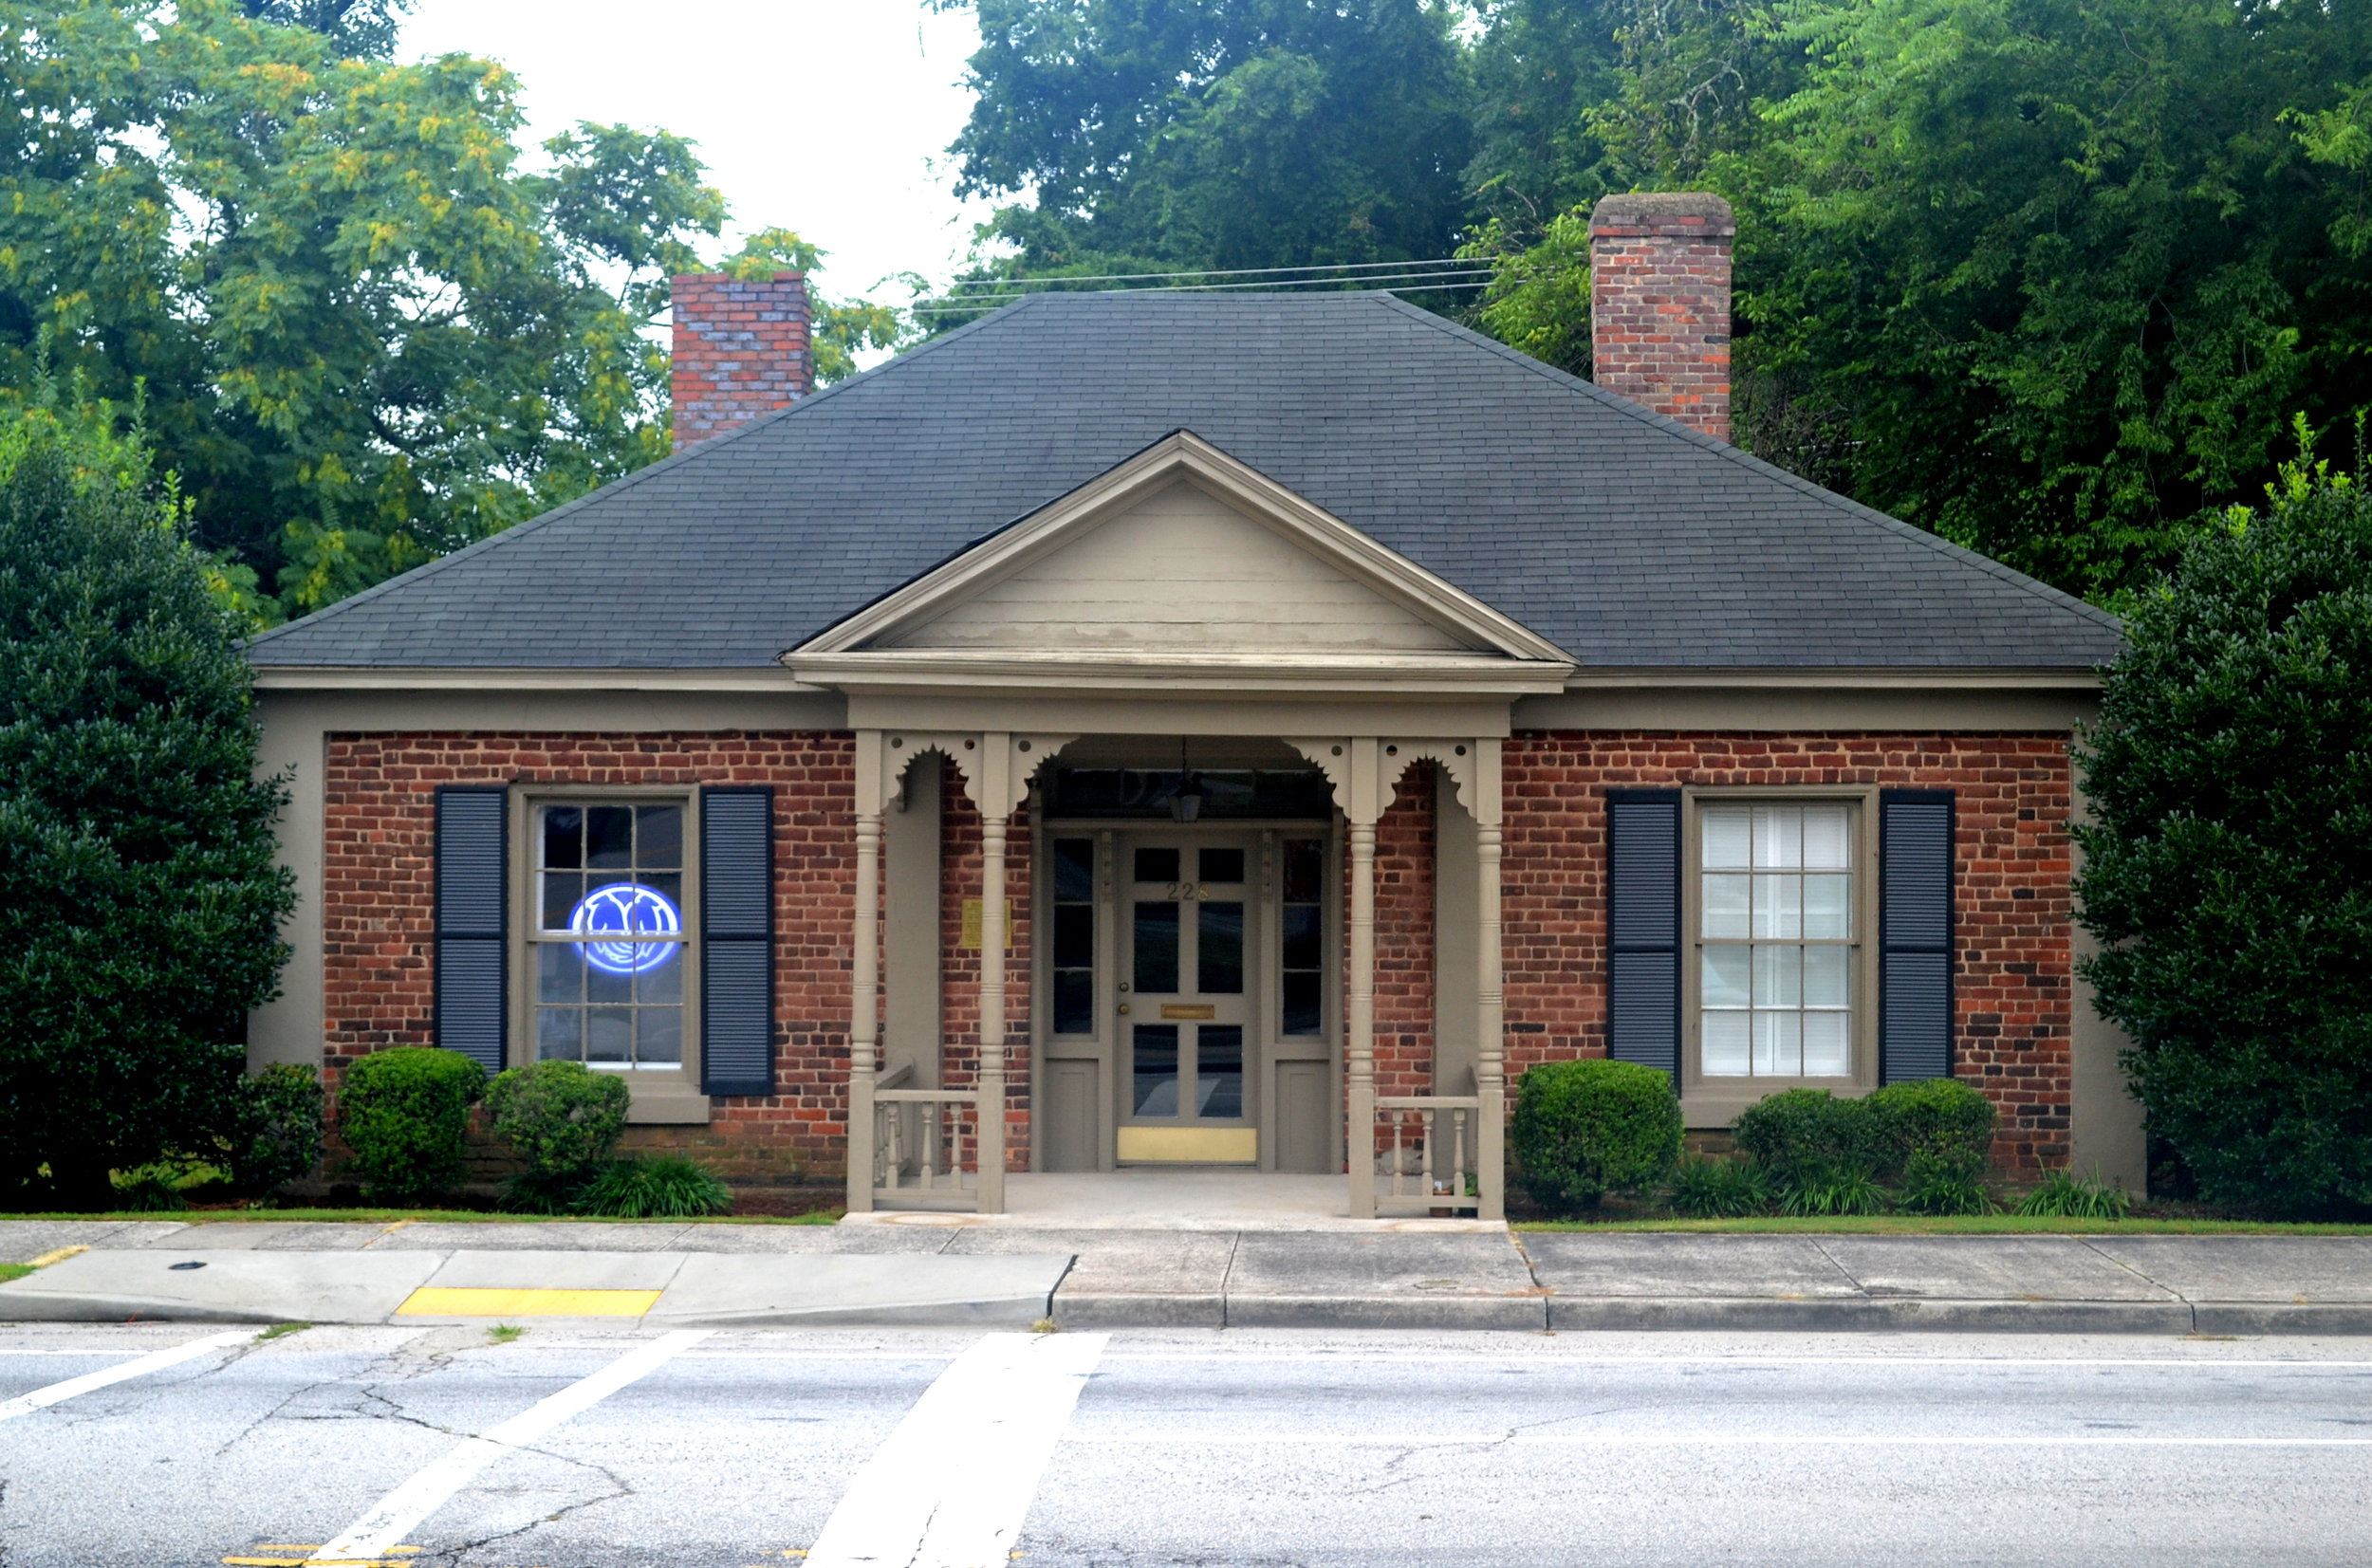 Site of the current RH Boys and Girls Clubs